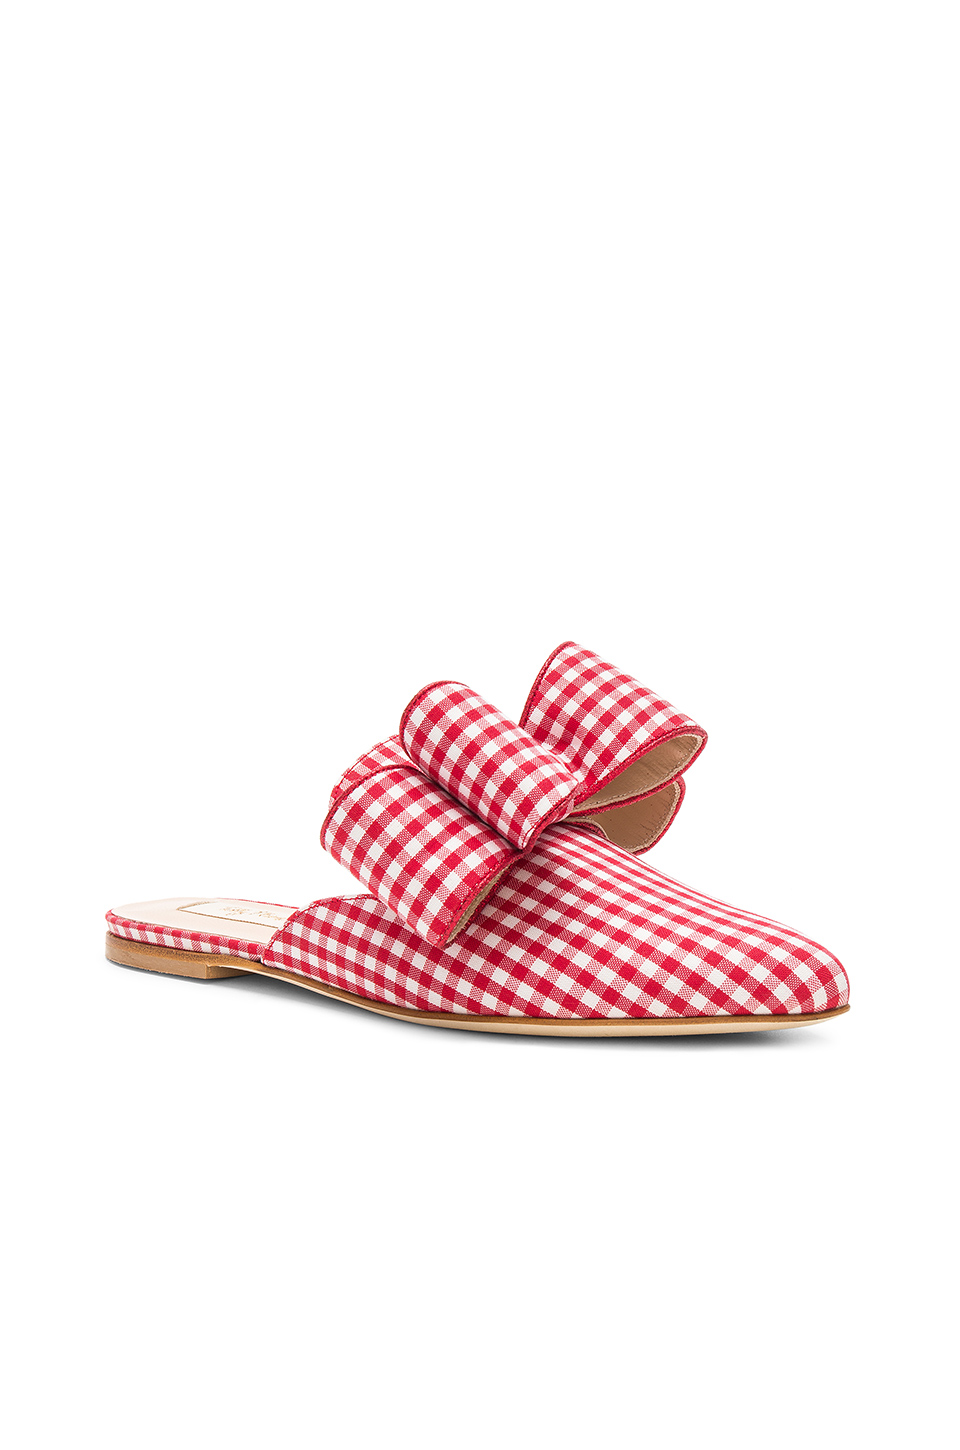 Polly Plume Betty Bow Joe Le Taxi Slide in Red